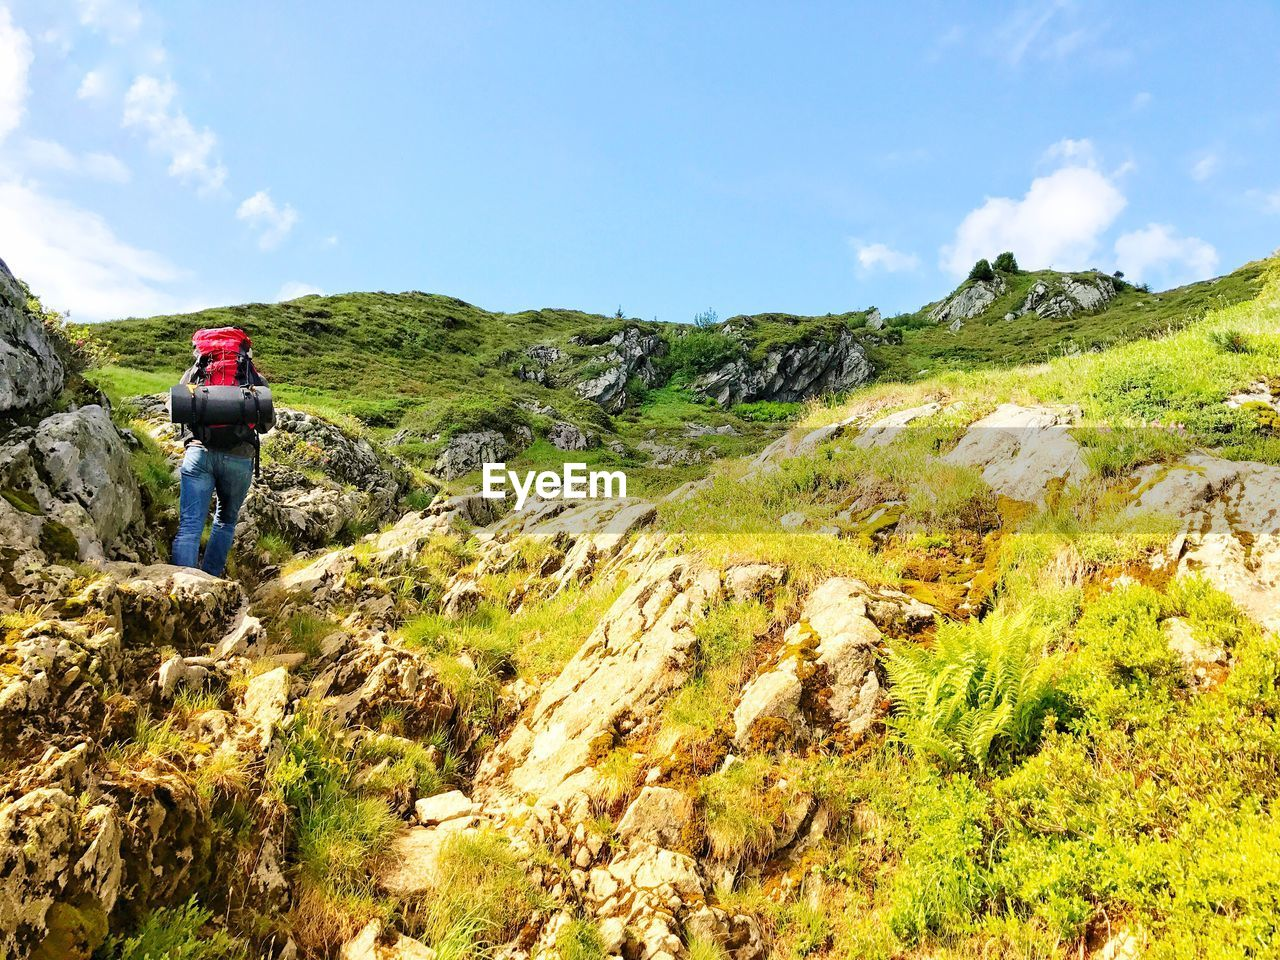 hiking, real people, backpack, rear view, beauty in nature, adventure, mountain, sky, hiker, nature, lifestyles, scenics, leisure activity, full length, one person, tranquil scene, day, tranquility, casual clothing, standing, walking, rock - object, cloud - sky, grass, outdoors, exploration, men, green color, landscape, people